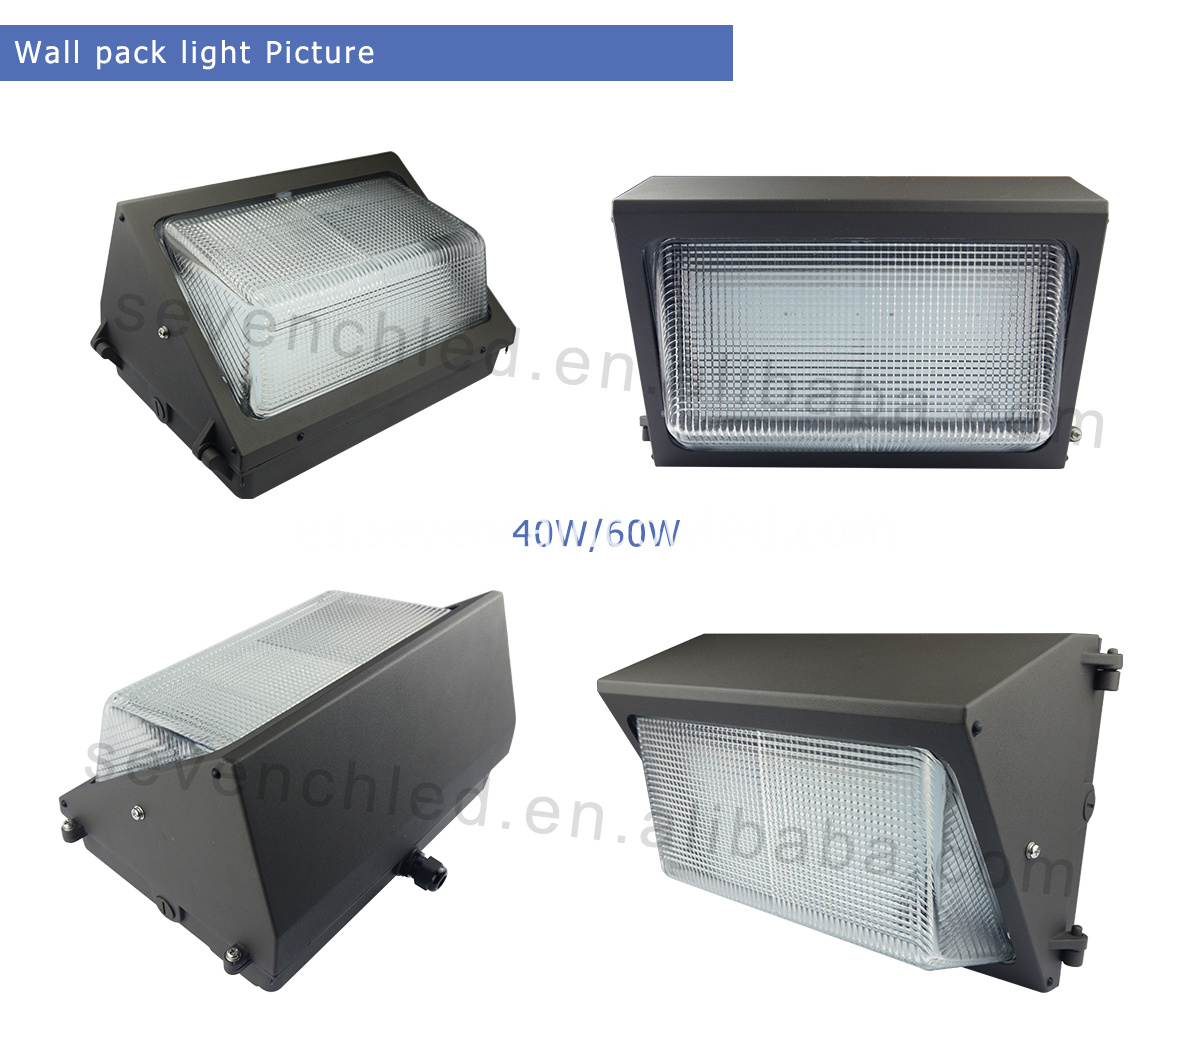 40w led wall pack